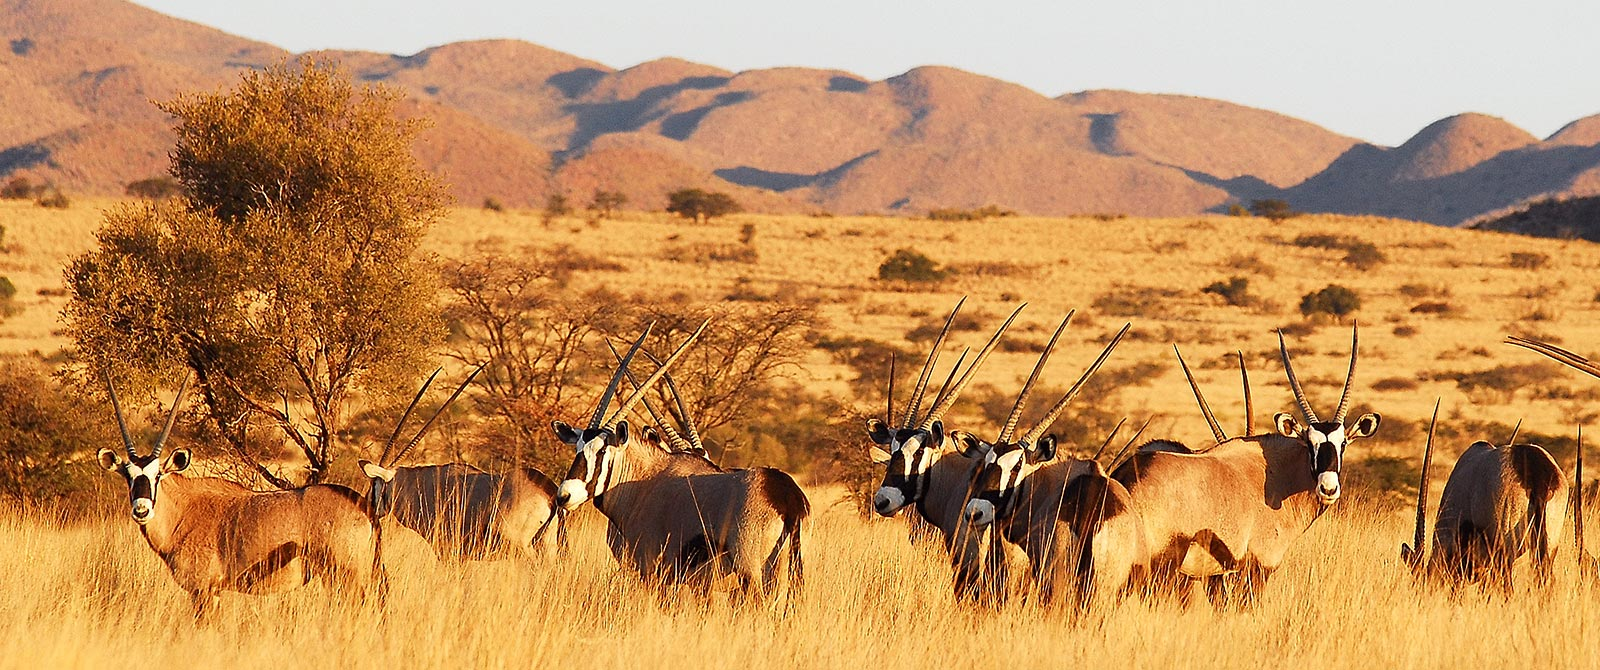 Herd of Oryx in Tswalu Kalahari Game Reserve